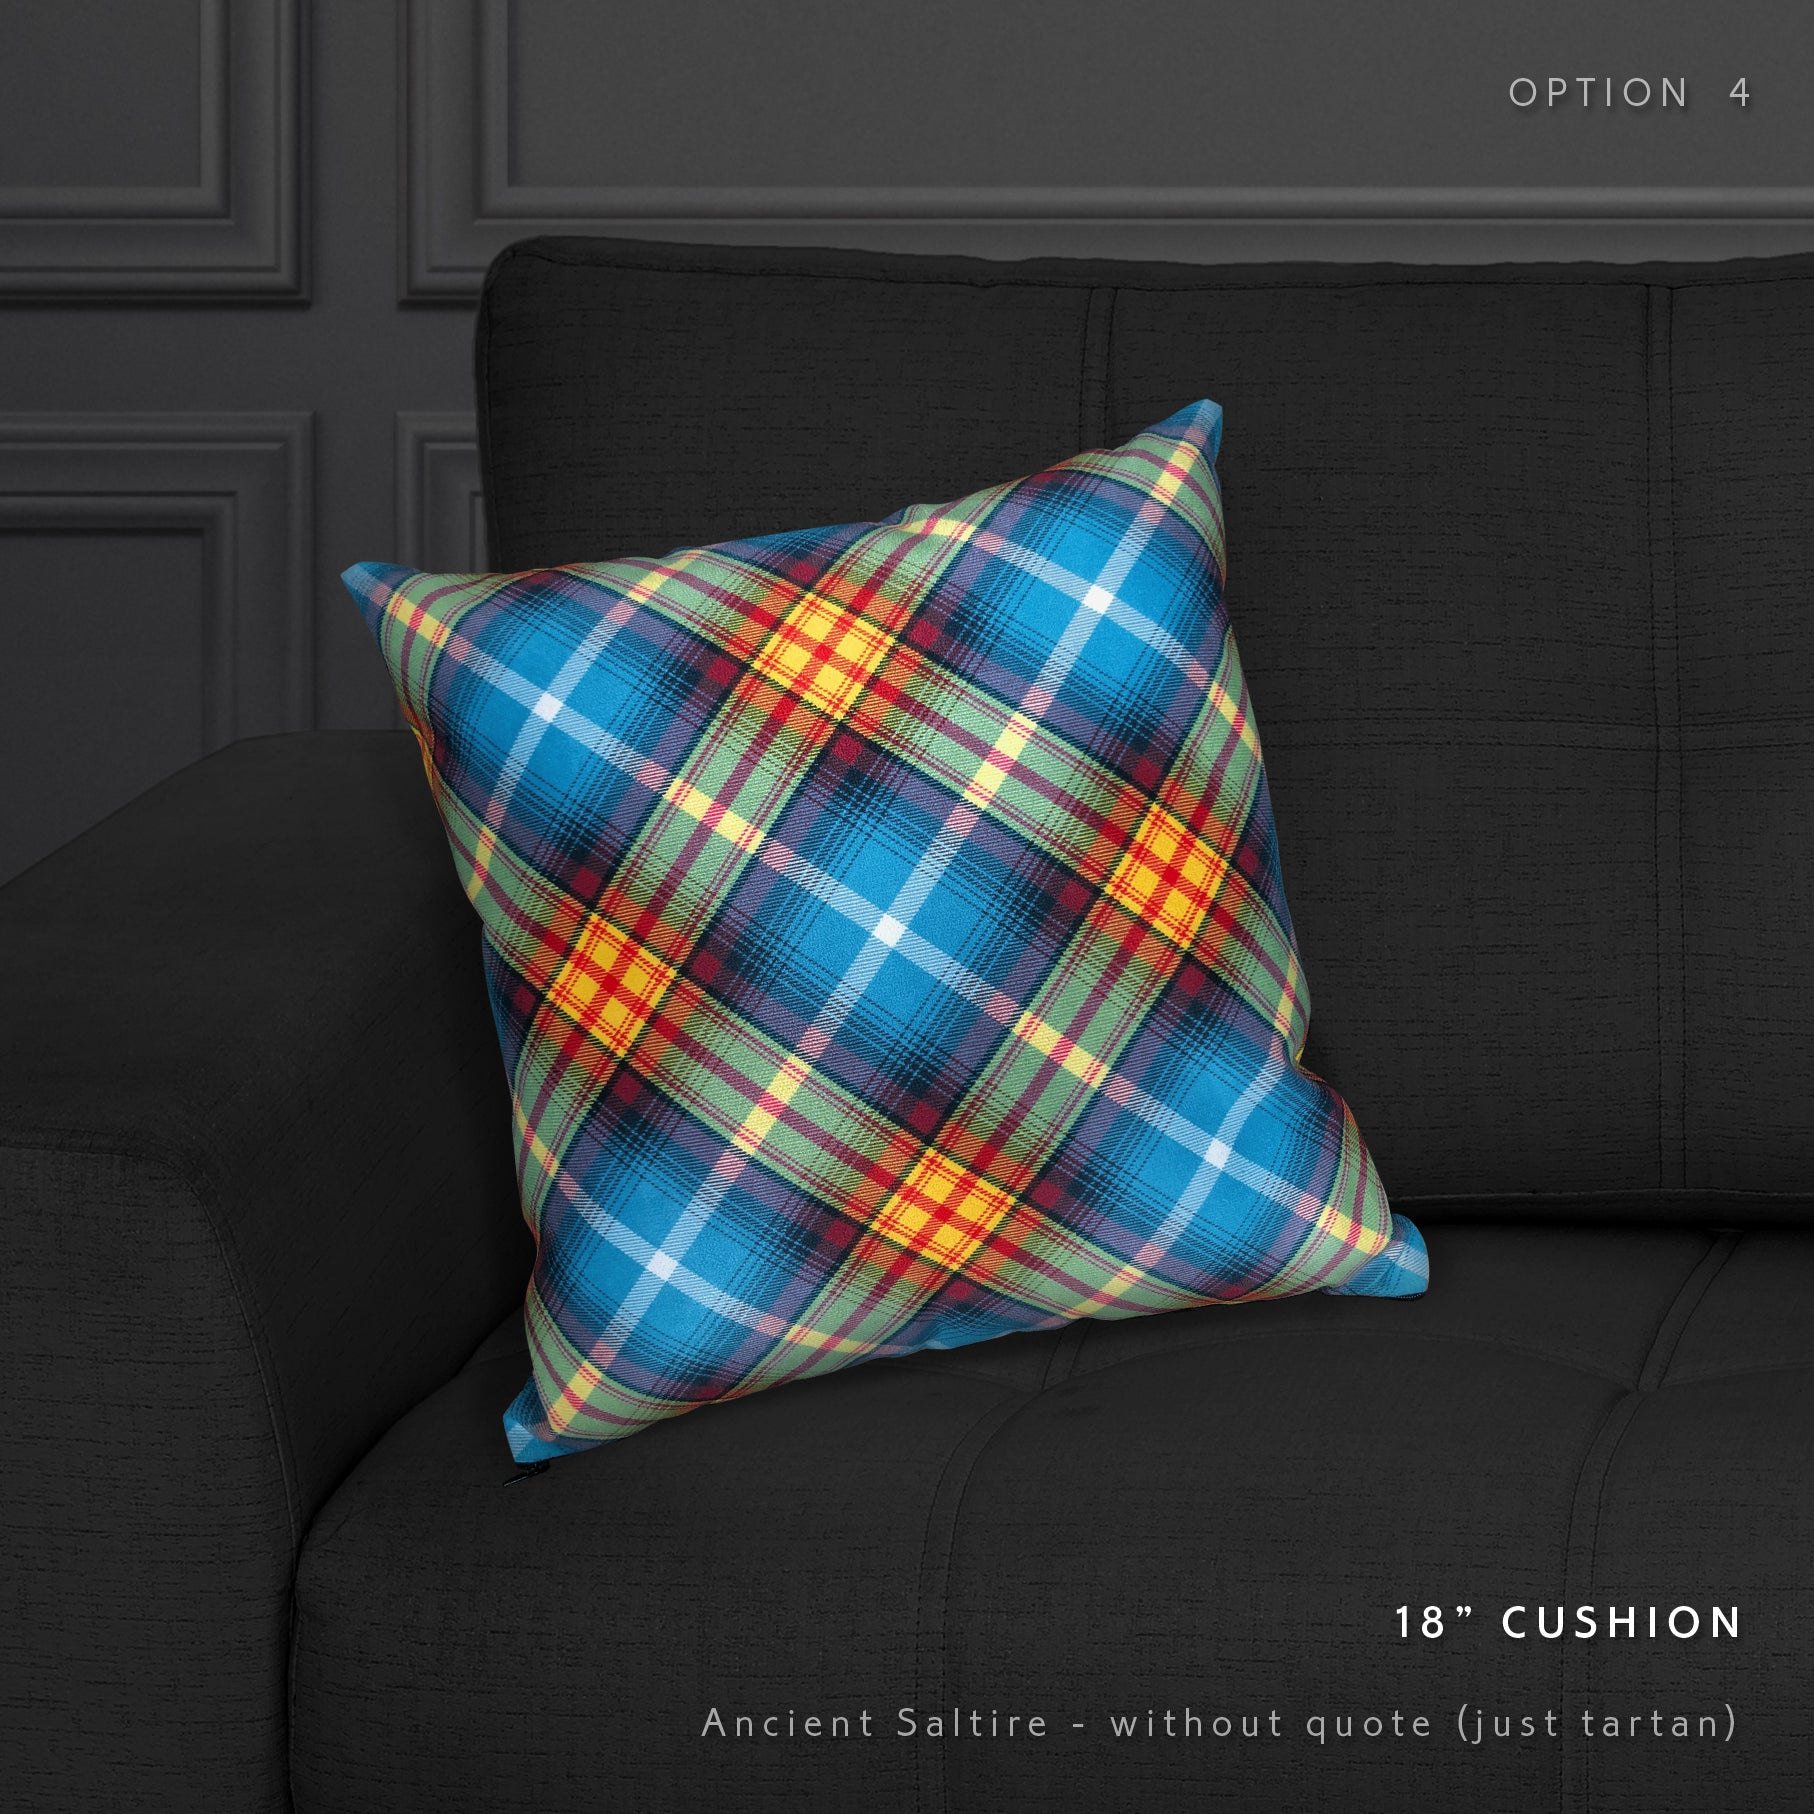 Steven Patrick Sim's Declaration of Scottish Independence tartan cushion